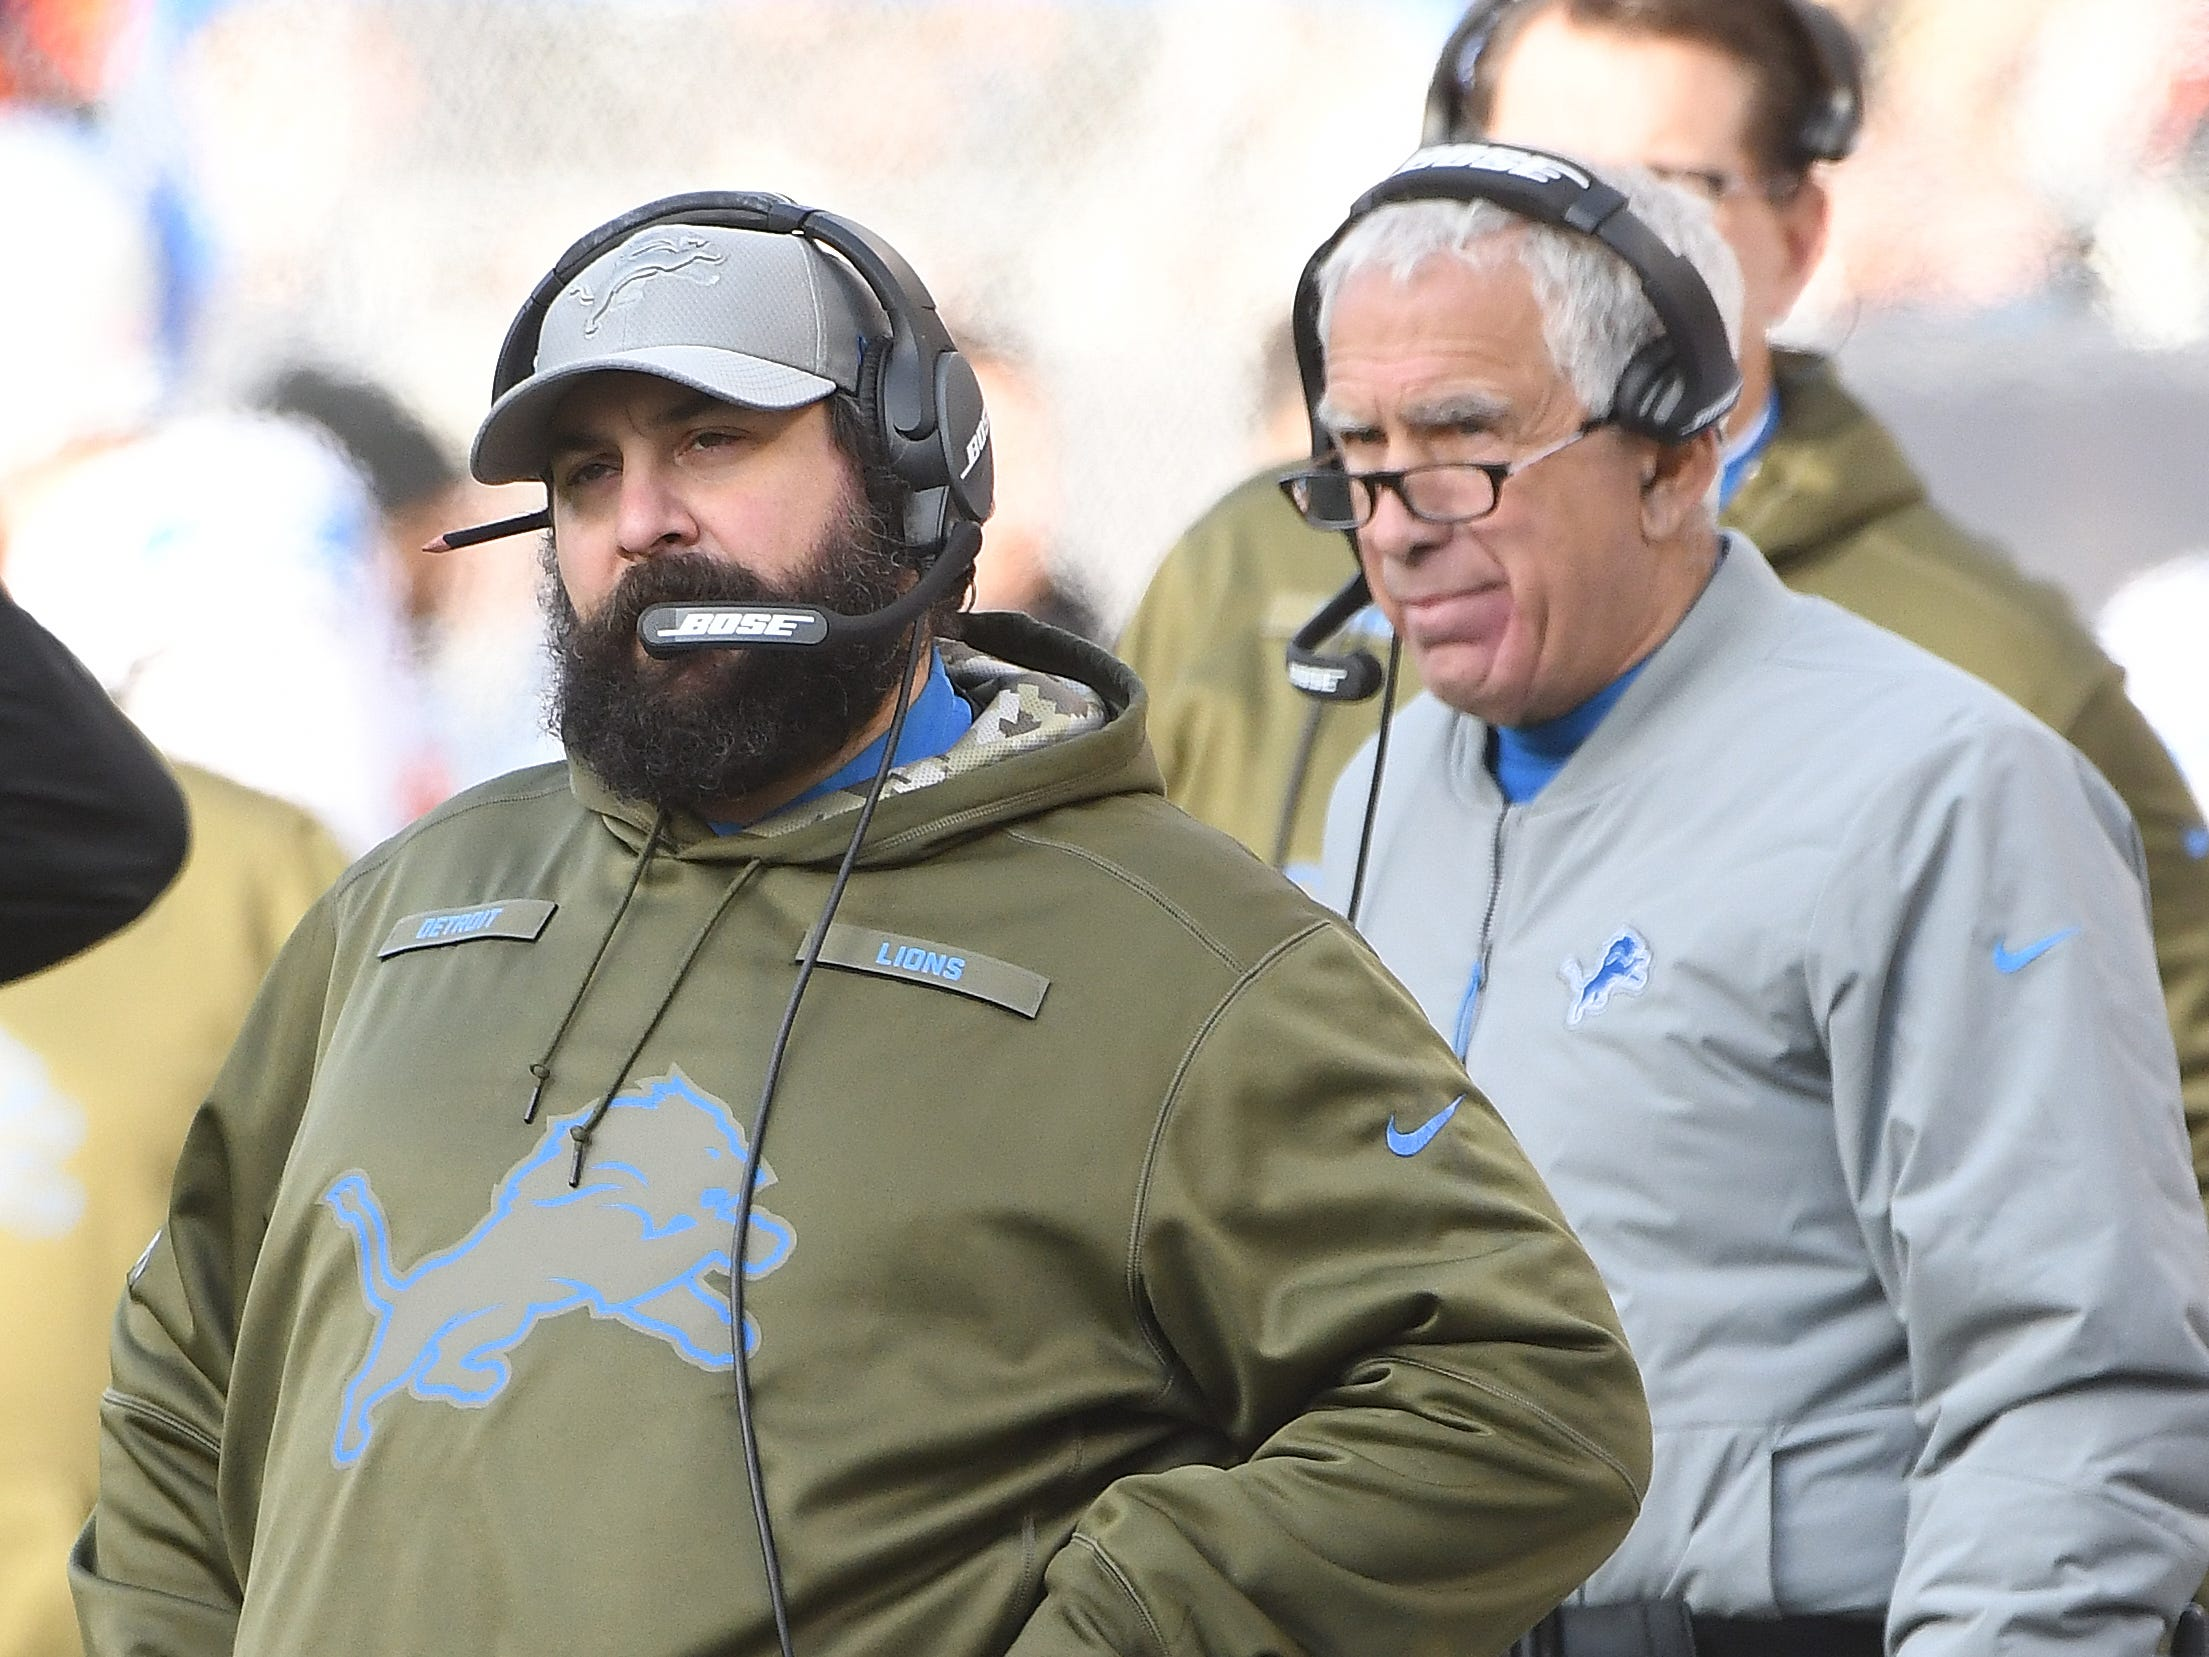 Lions head coach Matt Patricia and defensive coordinator Paul Pasqualoni on the sidelines in the fourth quarter.